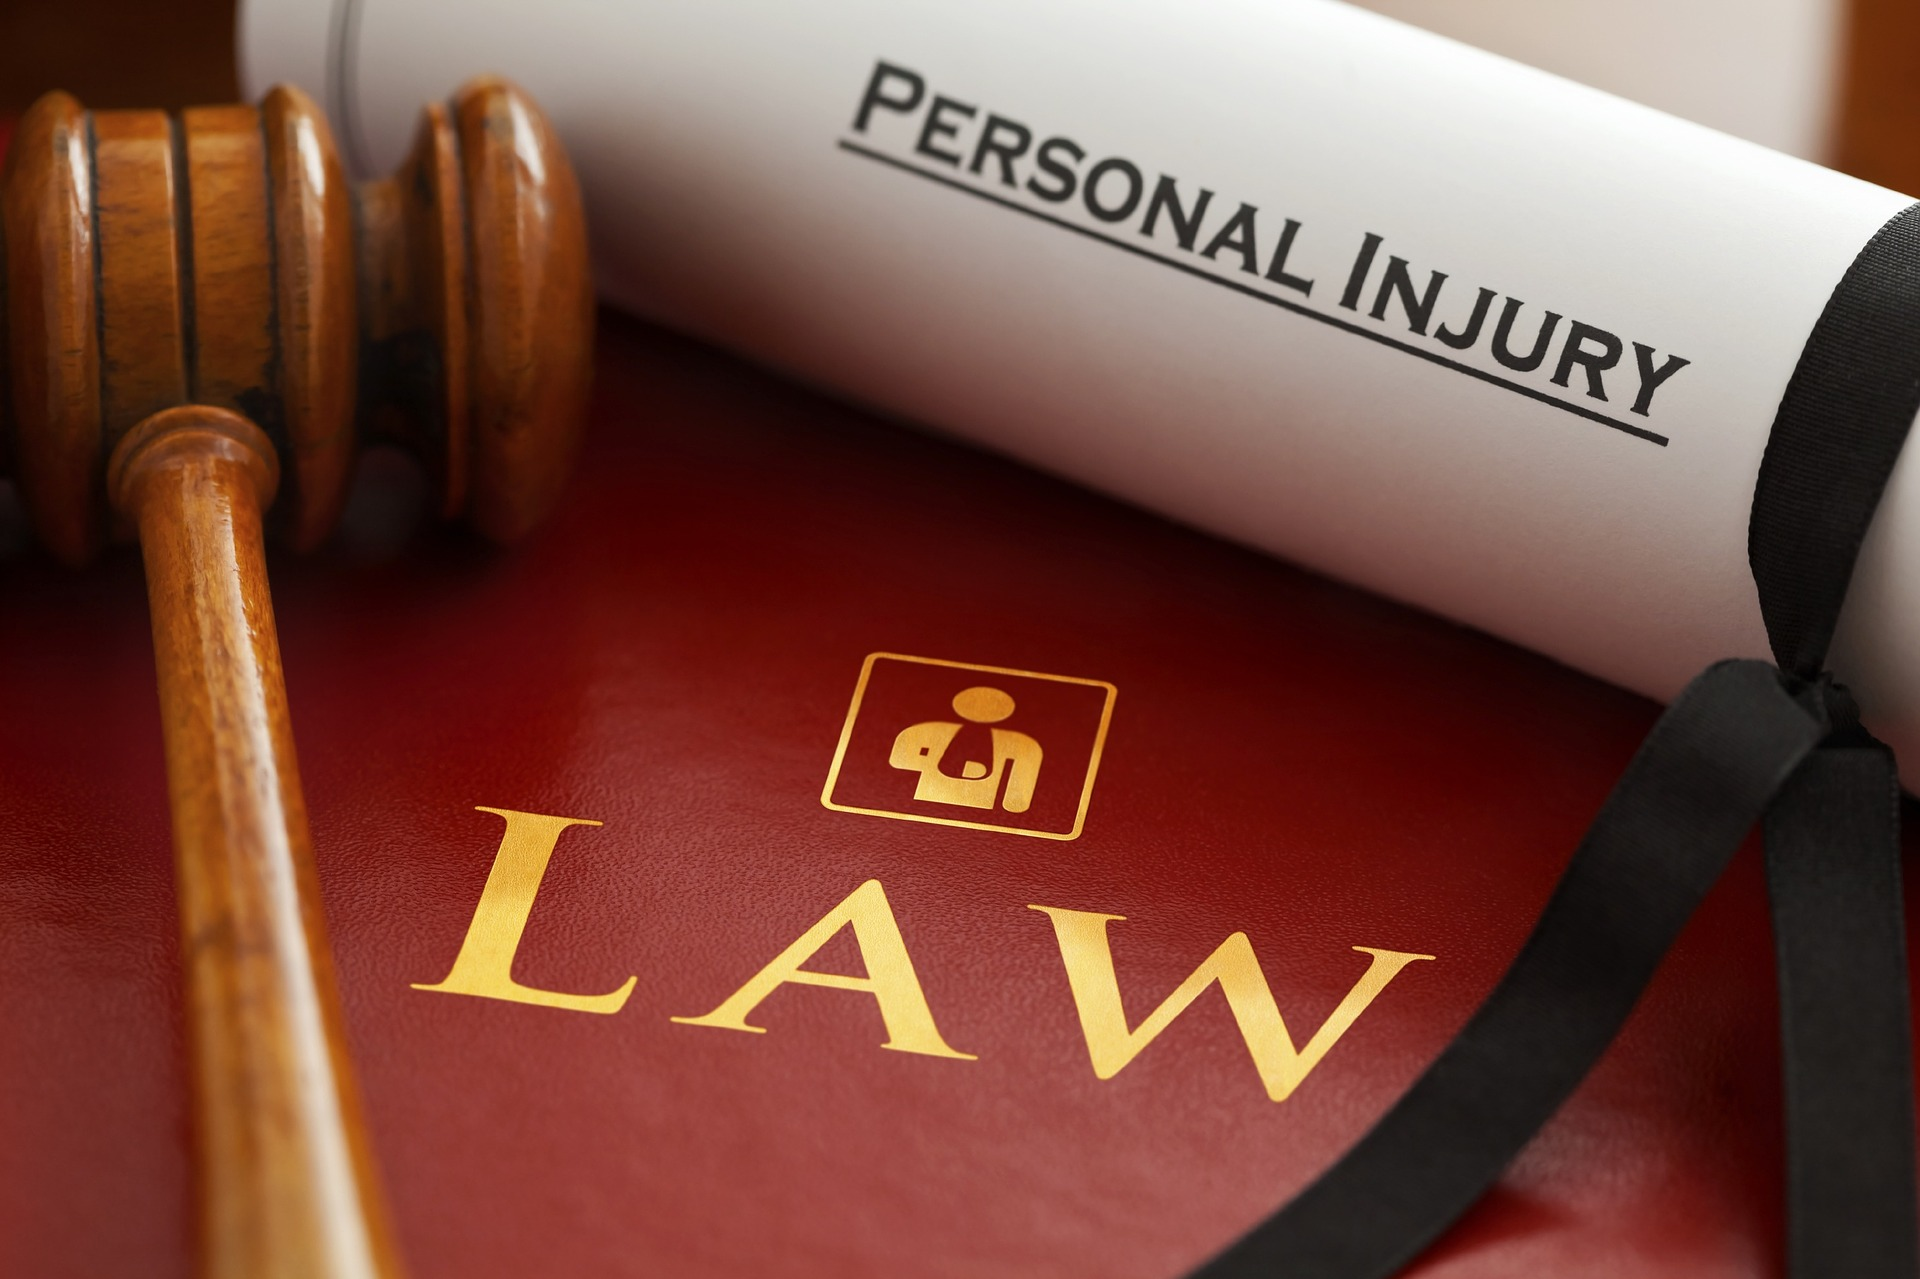 Professional liability insurance for Attorneys